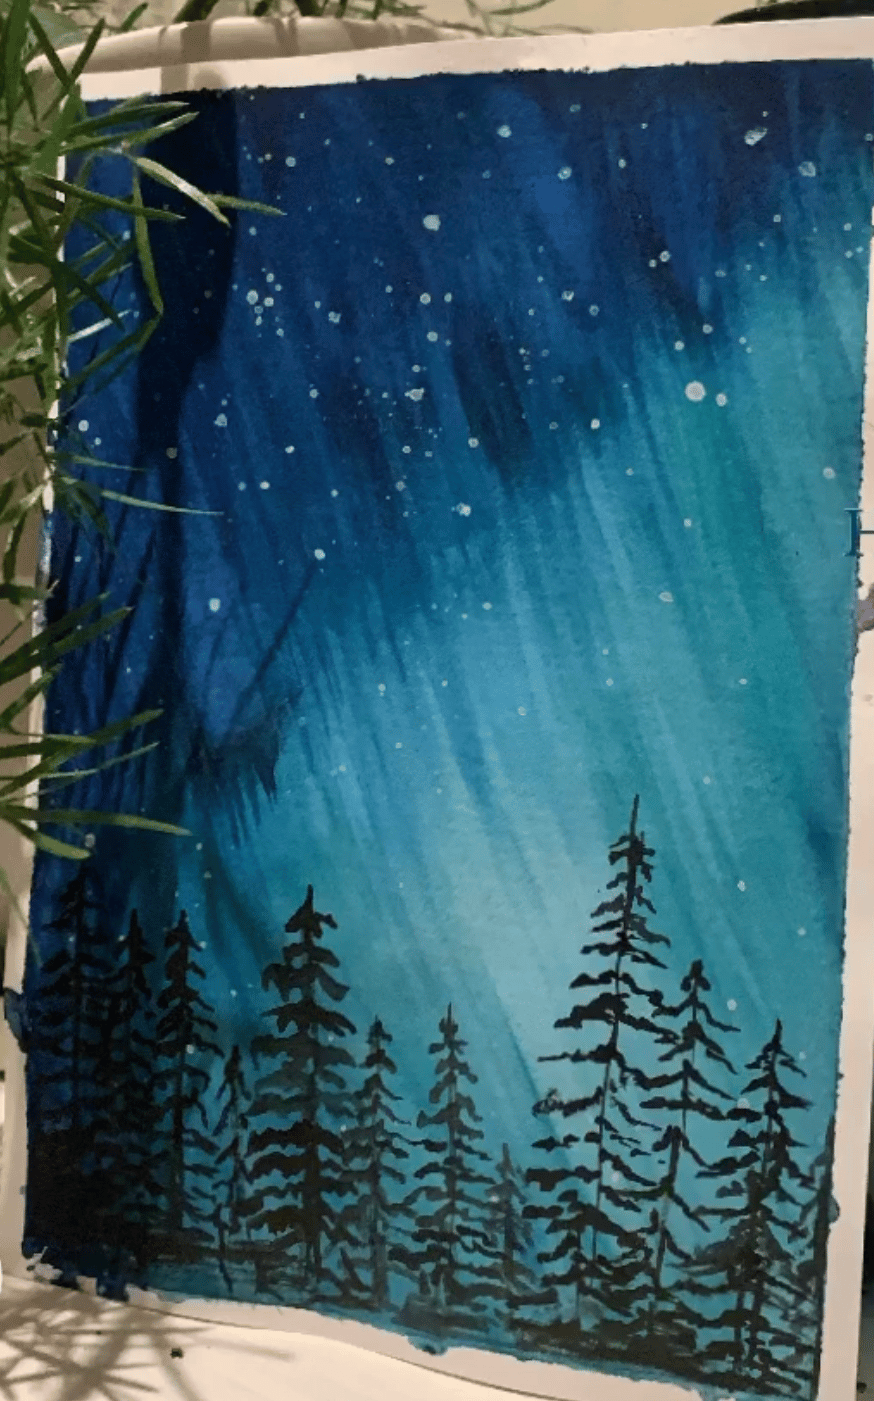 Northern lights 2 - image 2 - student project